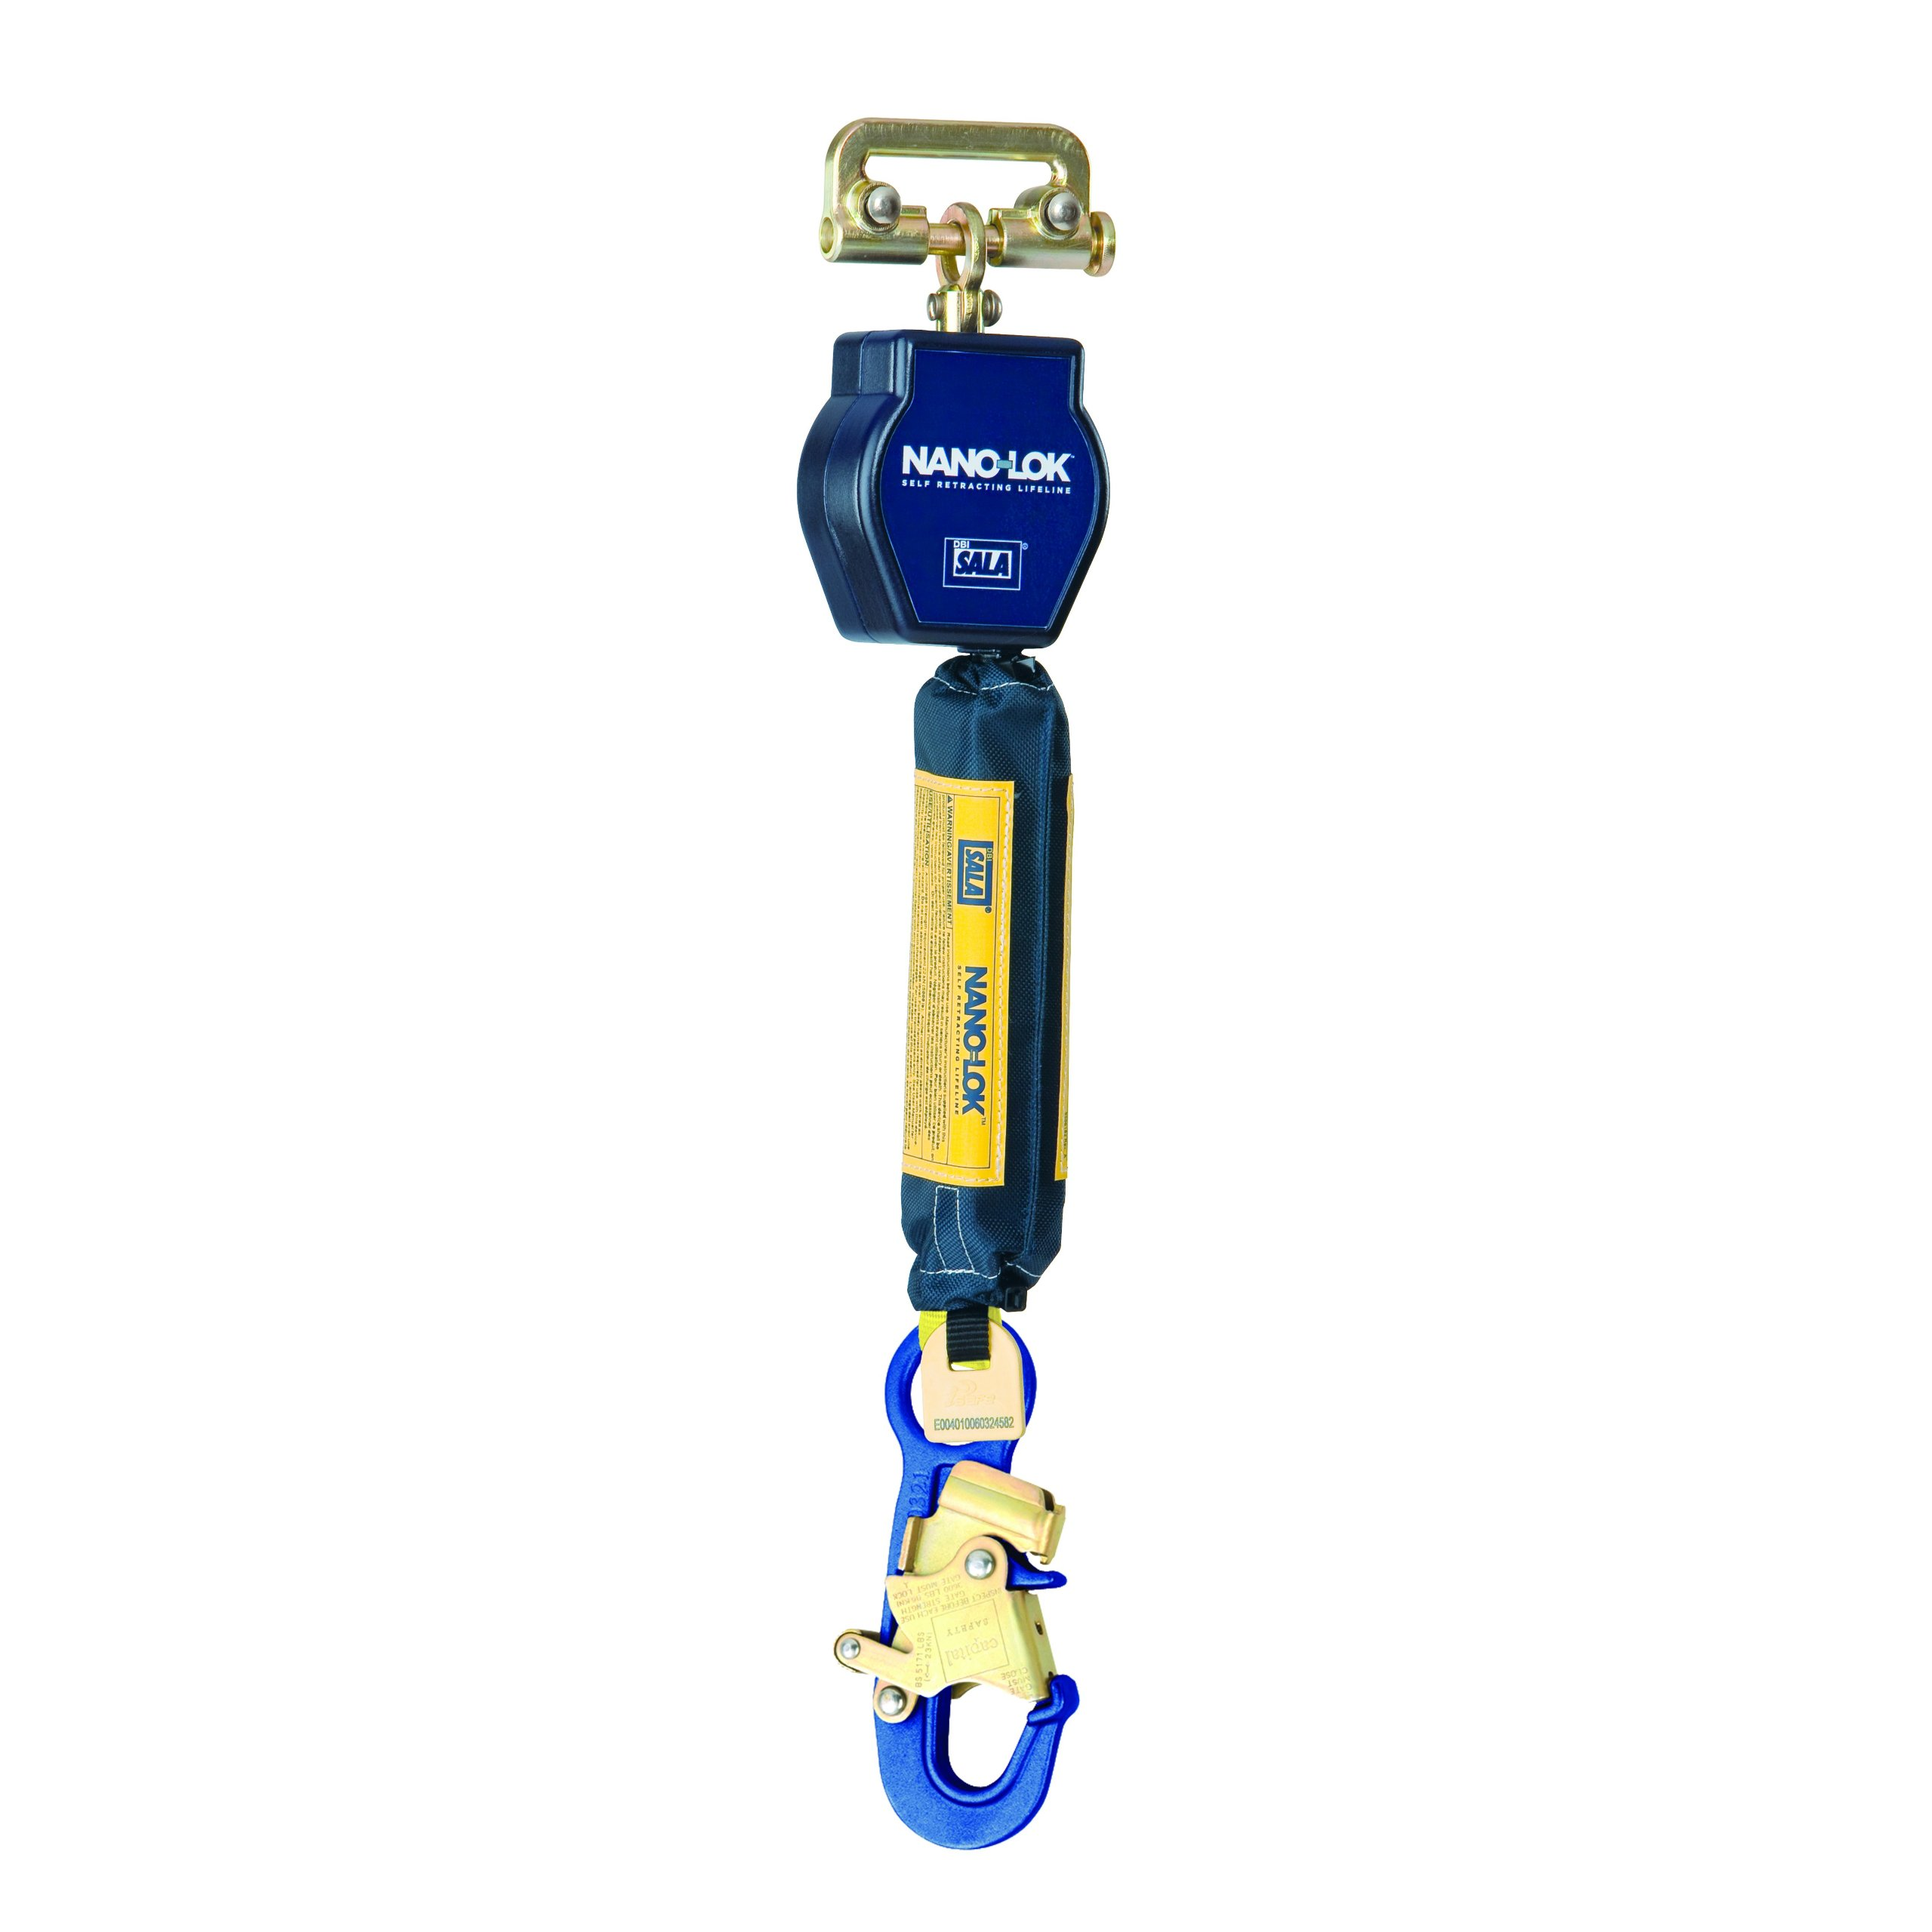 3M DBI-SALA Nano-Lok 3101226 Self Retracting Lifeline, 6', 3/4'' Dynema Polyester Web,and Aluminum Snap Hook, Quick Connector For Harness Mounting, Blue